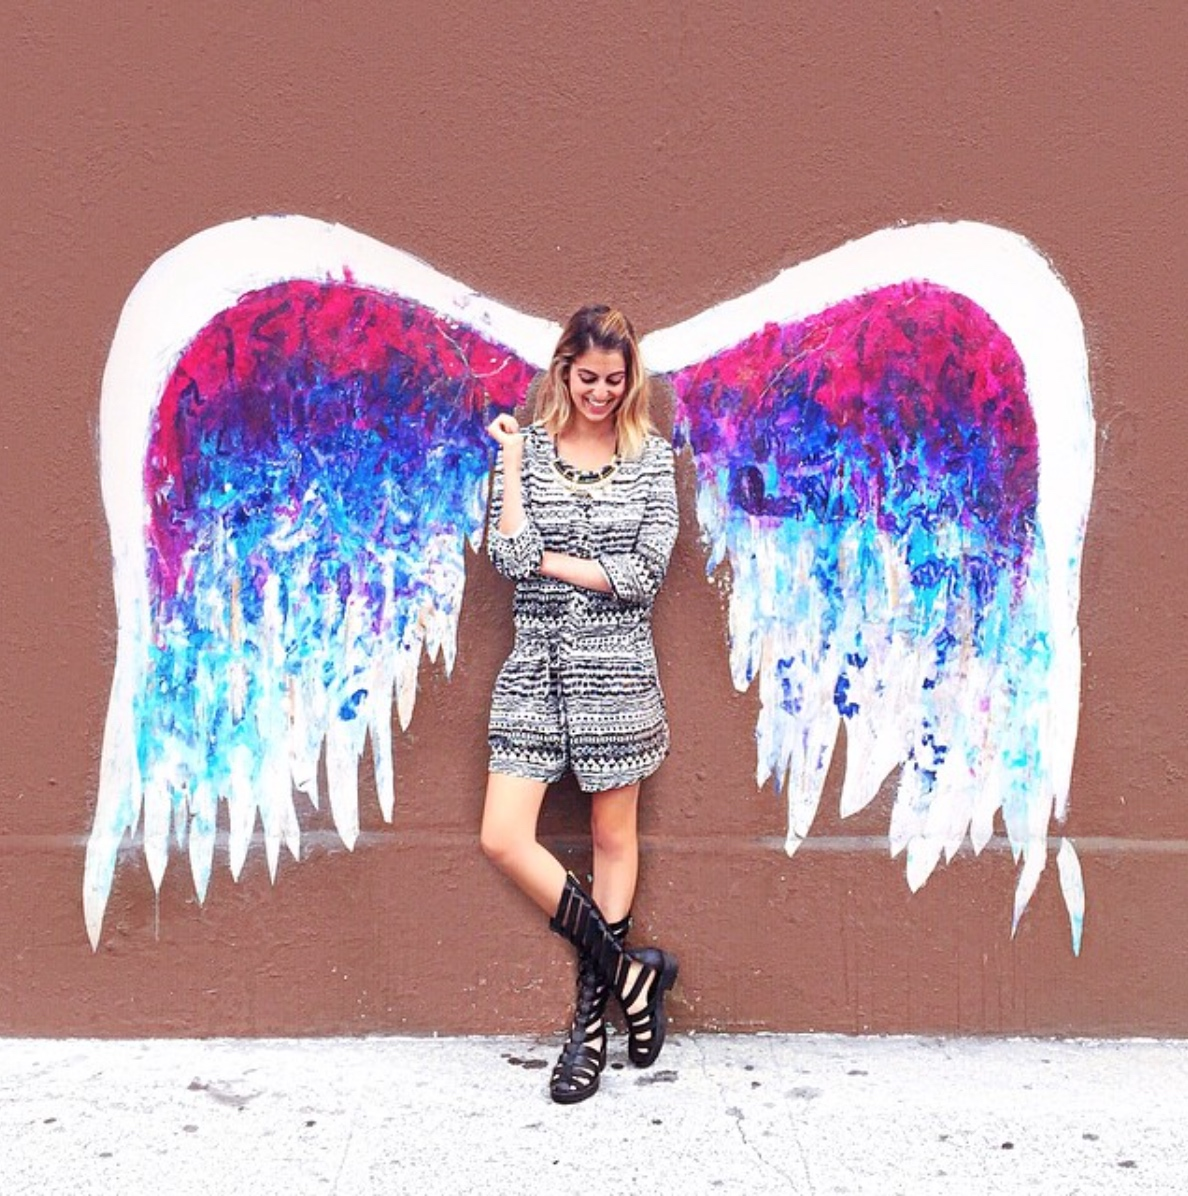 Wall Mural Painting Ideas Fashionlaine S 8 Great Photo Backdrops In La